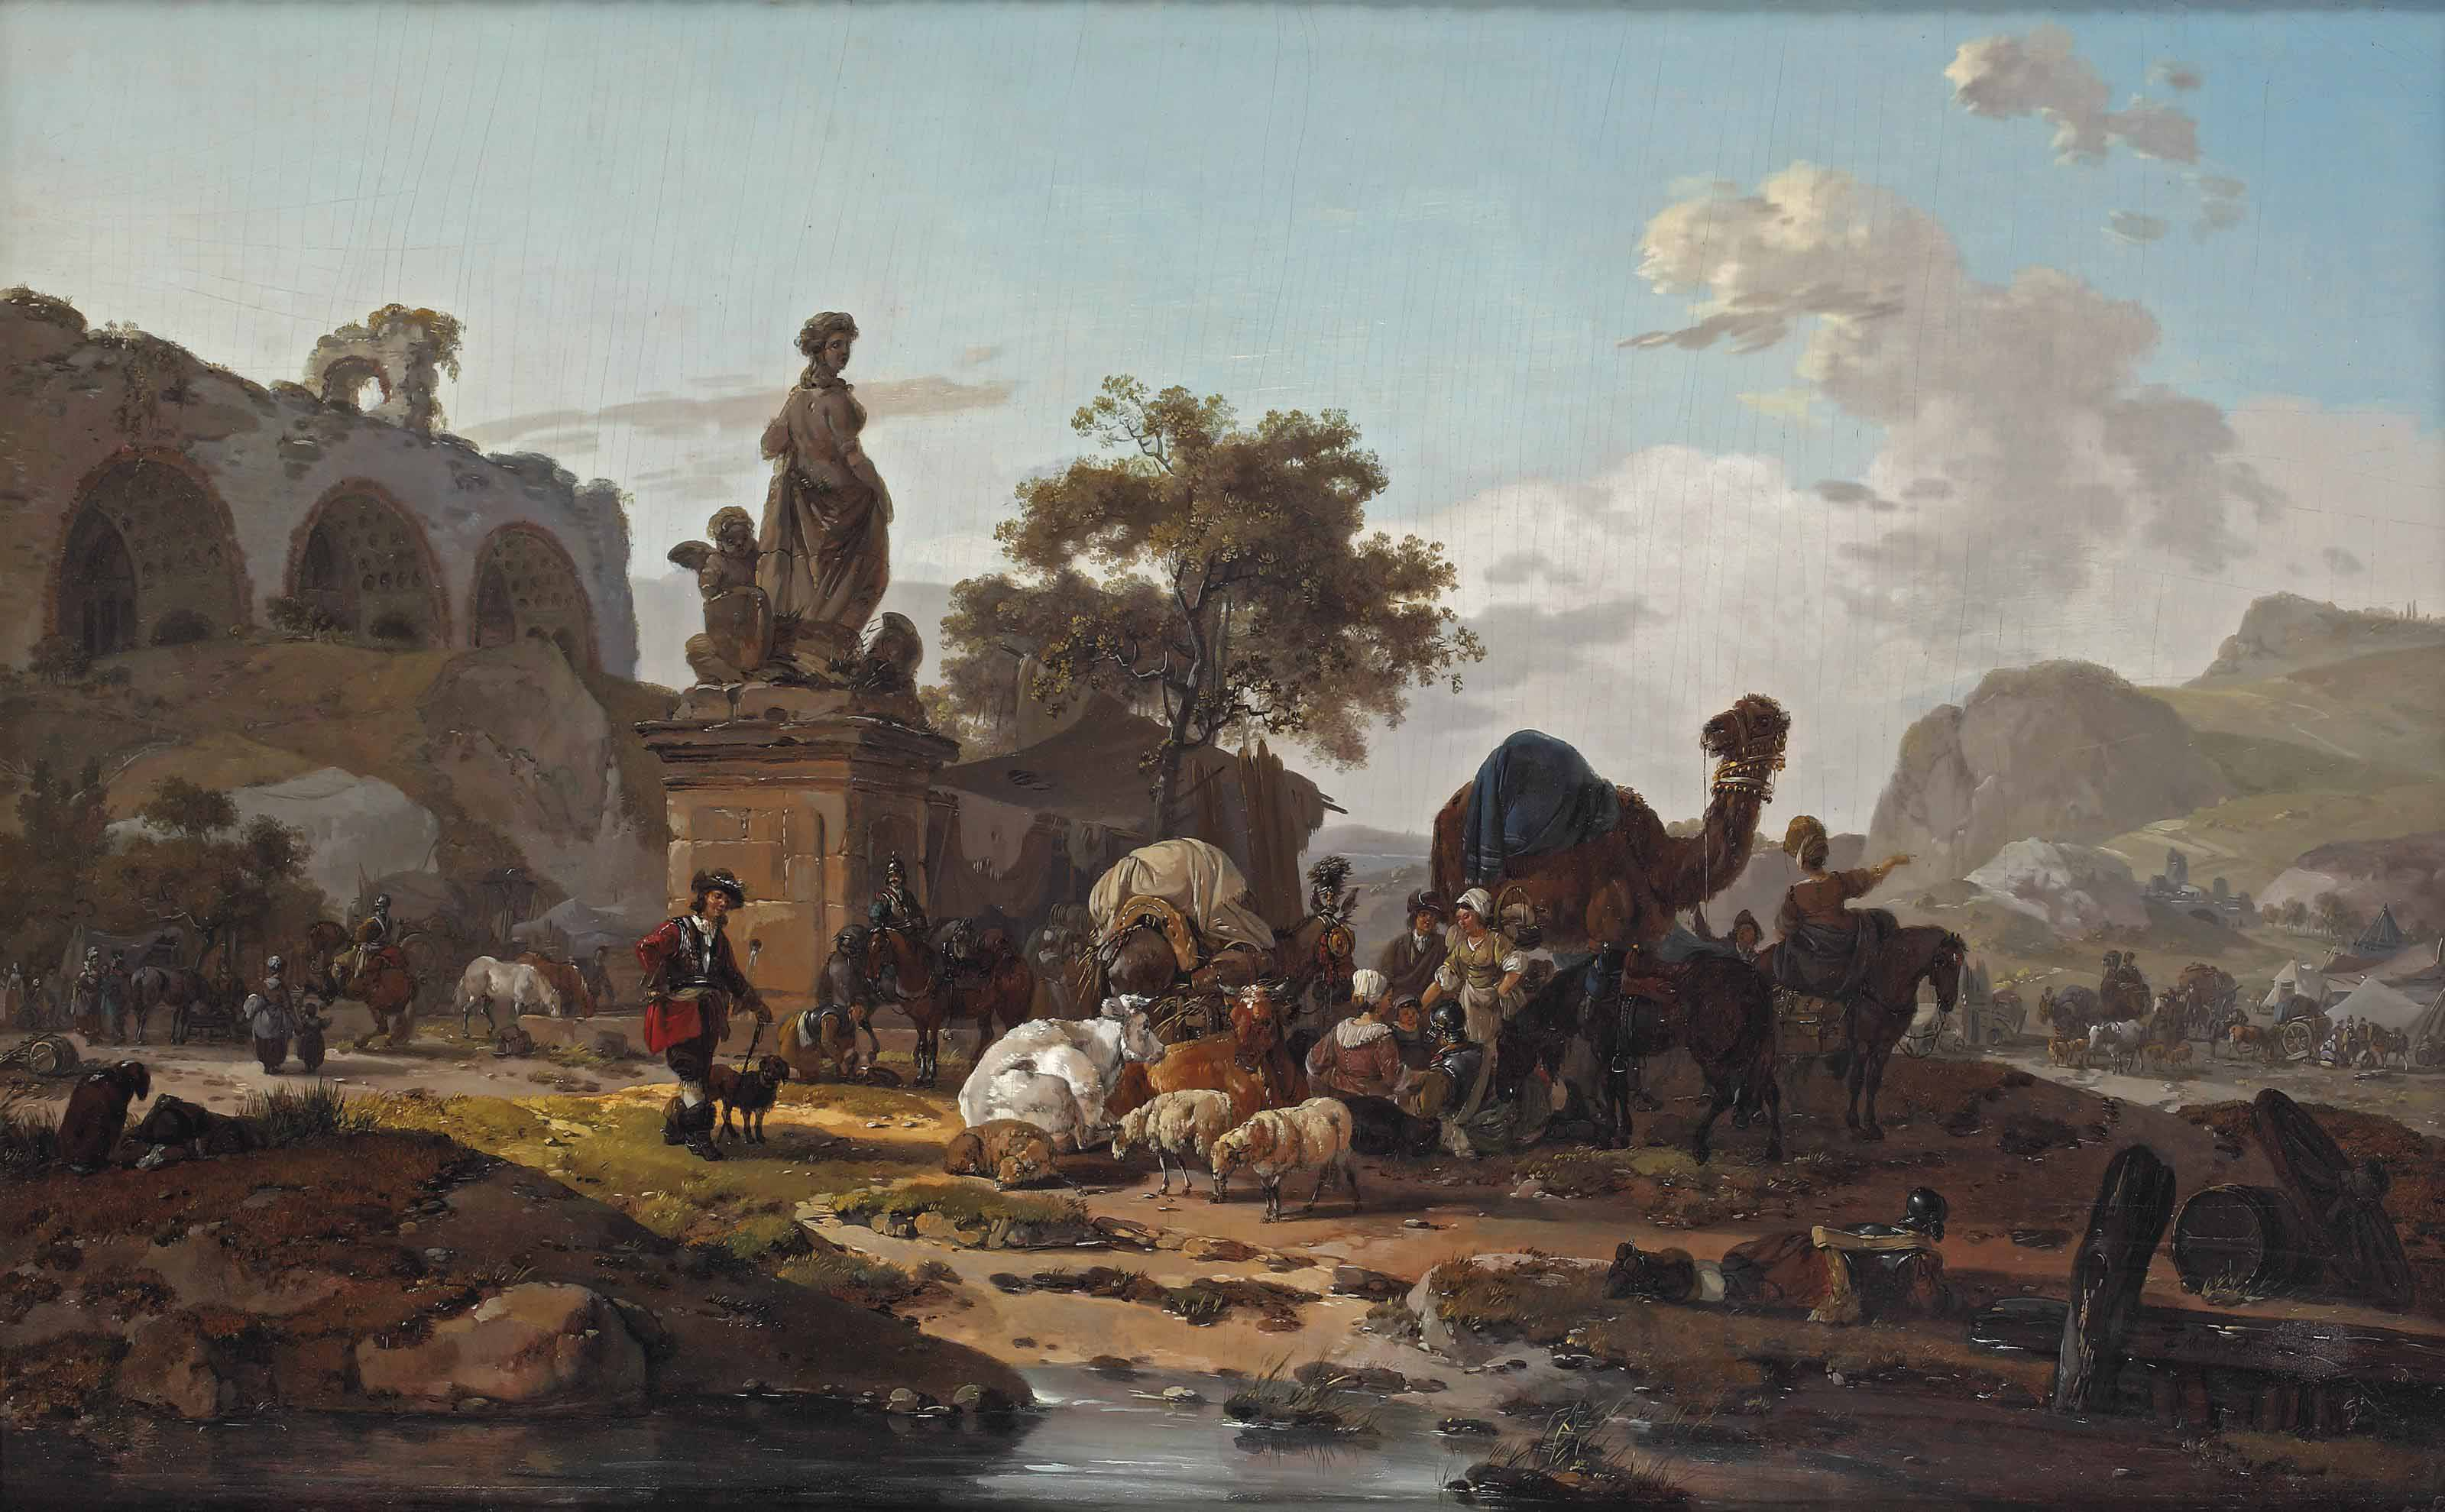 An Italianate landscape with a caravan of cattle, sheep, a camel and travellers, near a ruin